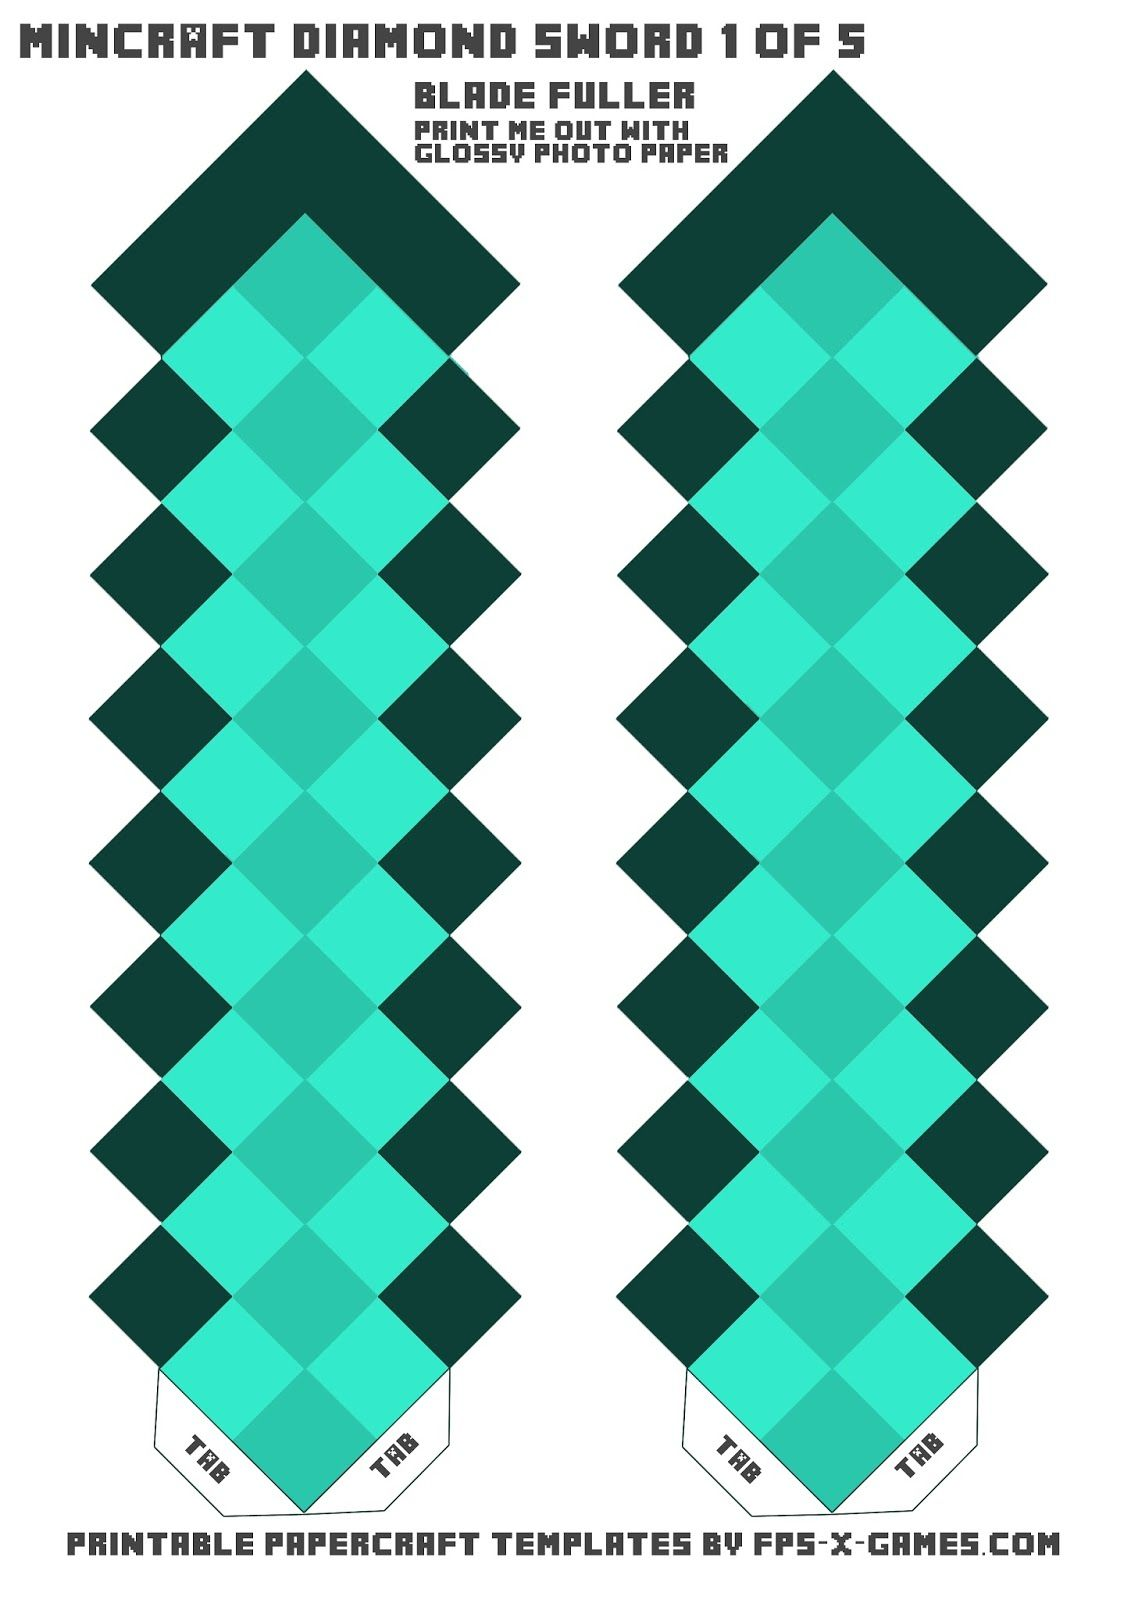 Minecraft clipart minecraft diamond sword. Template swordcreate